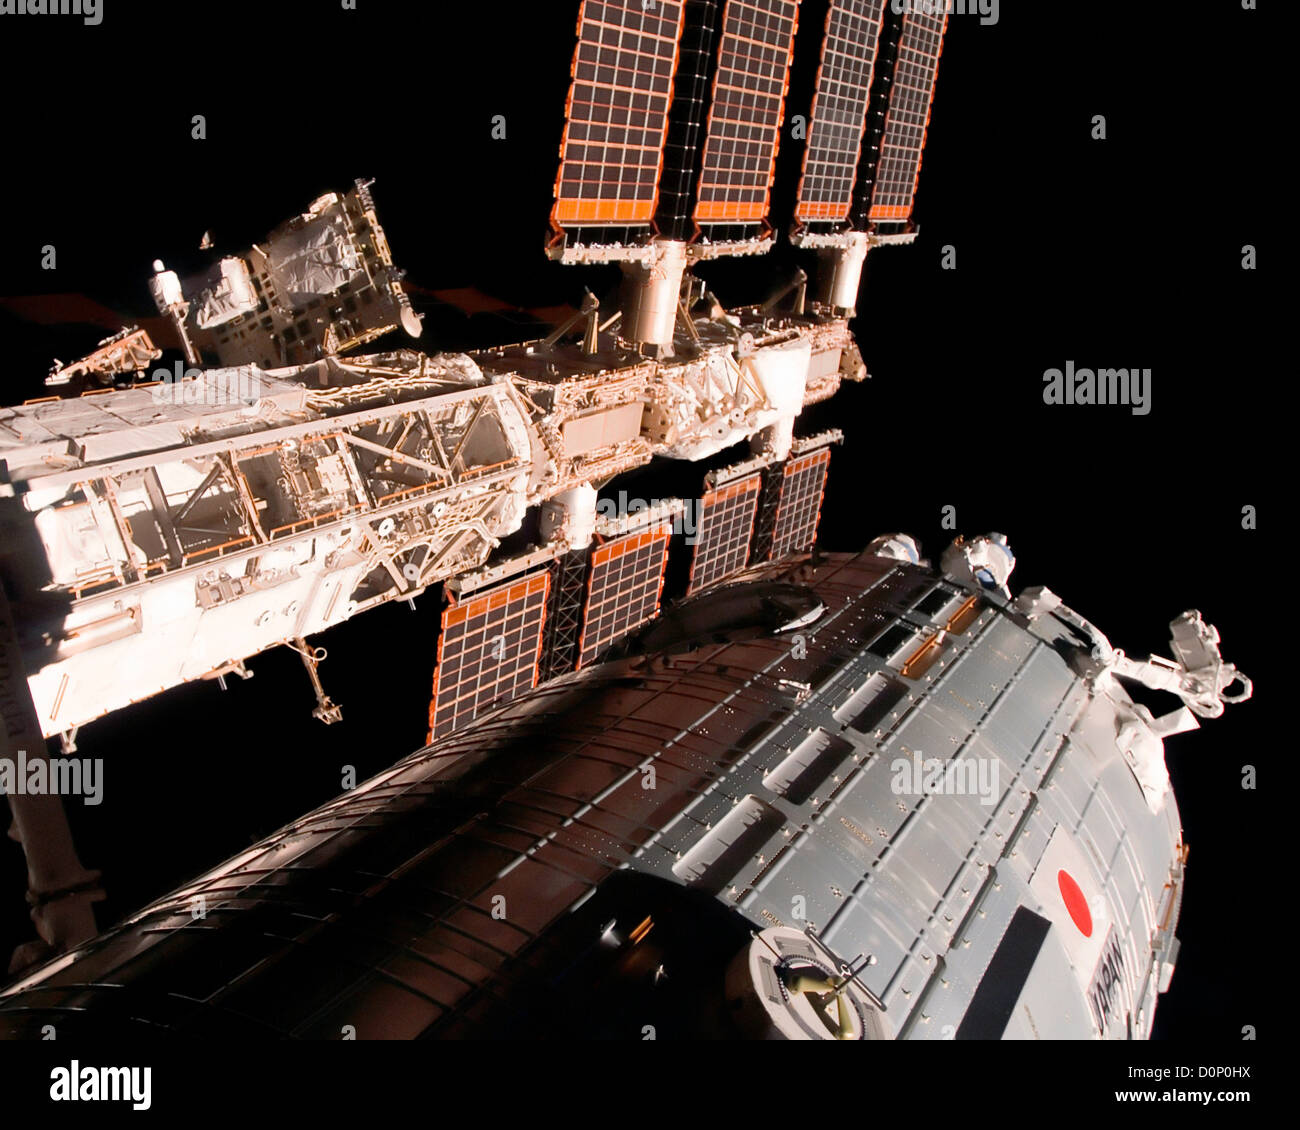 Kibo Attached to International Space Station - Stock Image